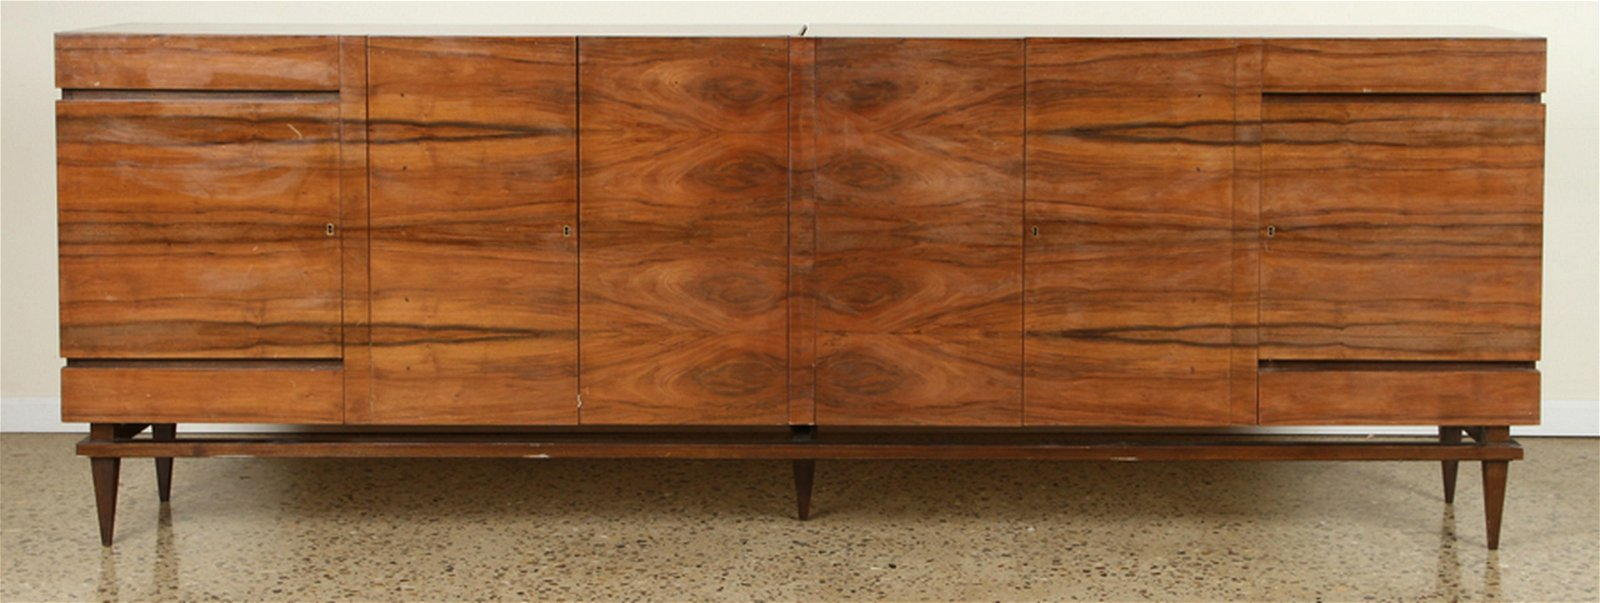 WALNUT MID CENTURY MODERN FLOATING SIDEBOARD 1960